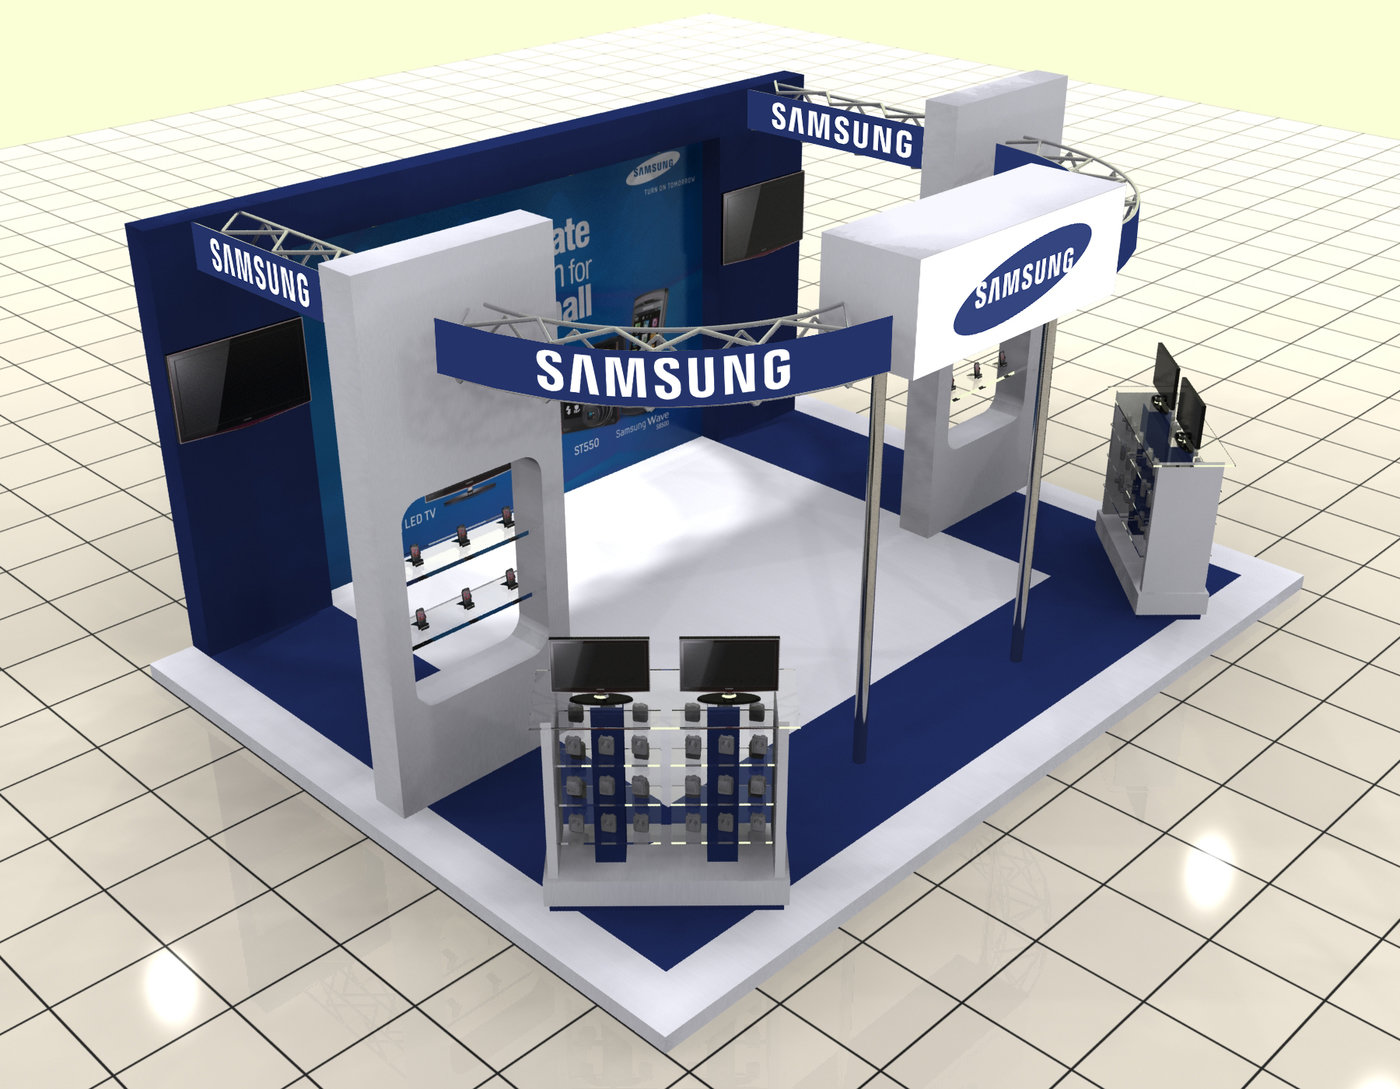 Exhibition Stall Designers In Karachi : Samsung stall at park tower karachi by umair khan at coroflot.com